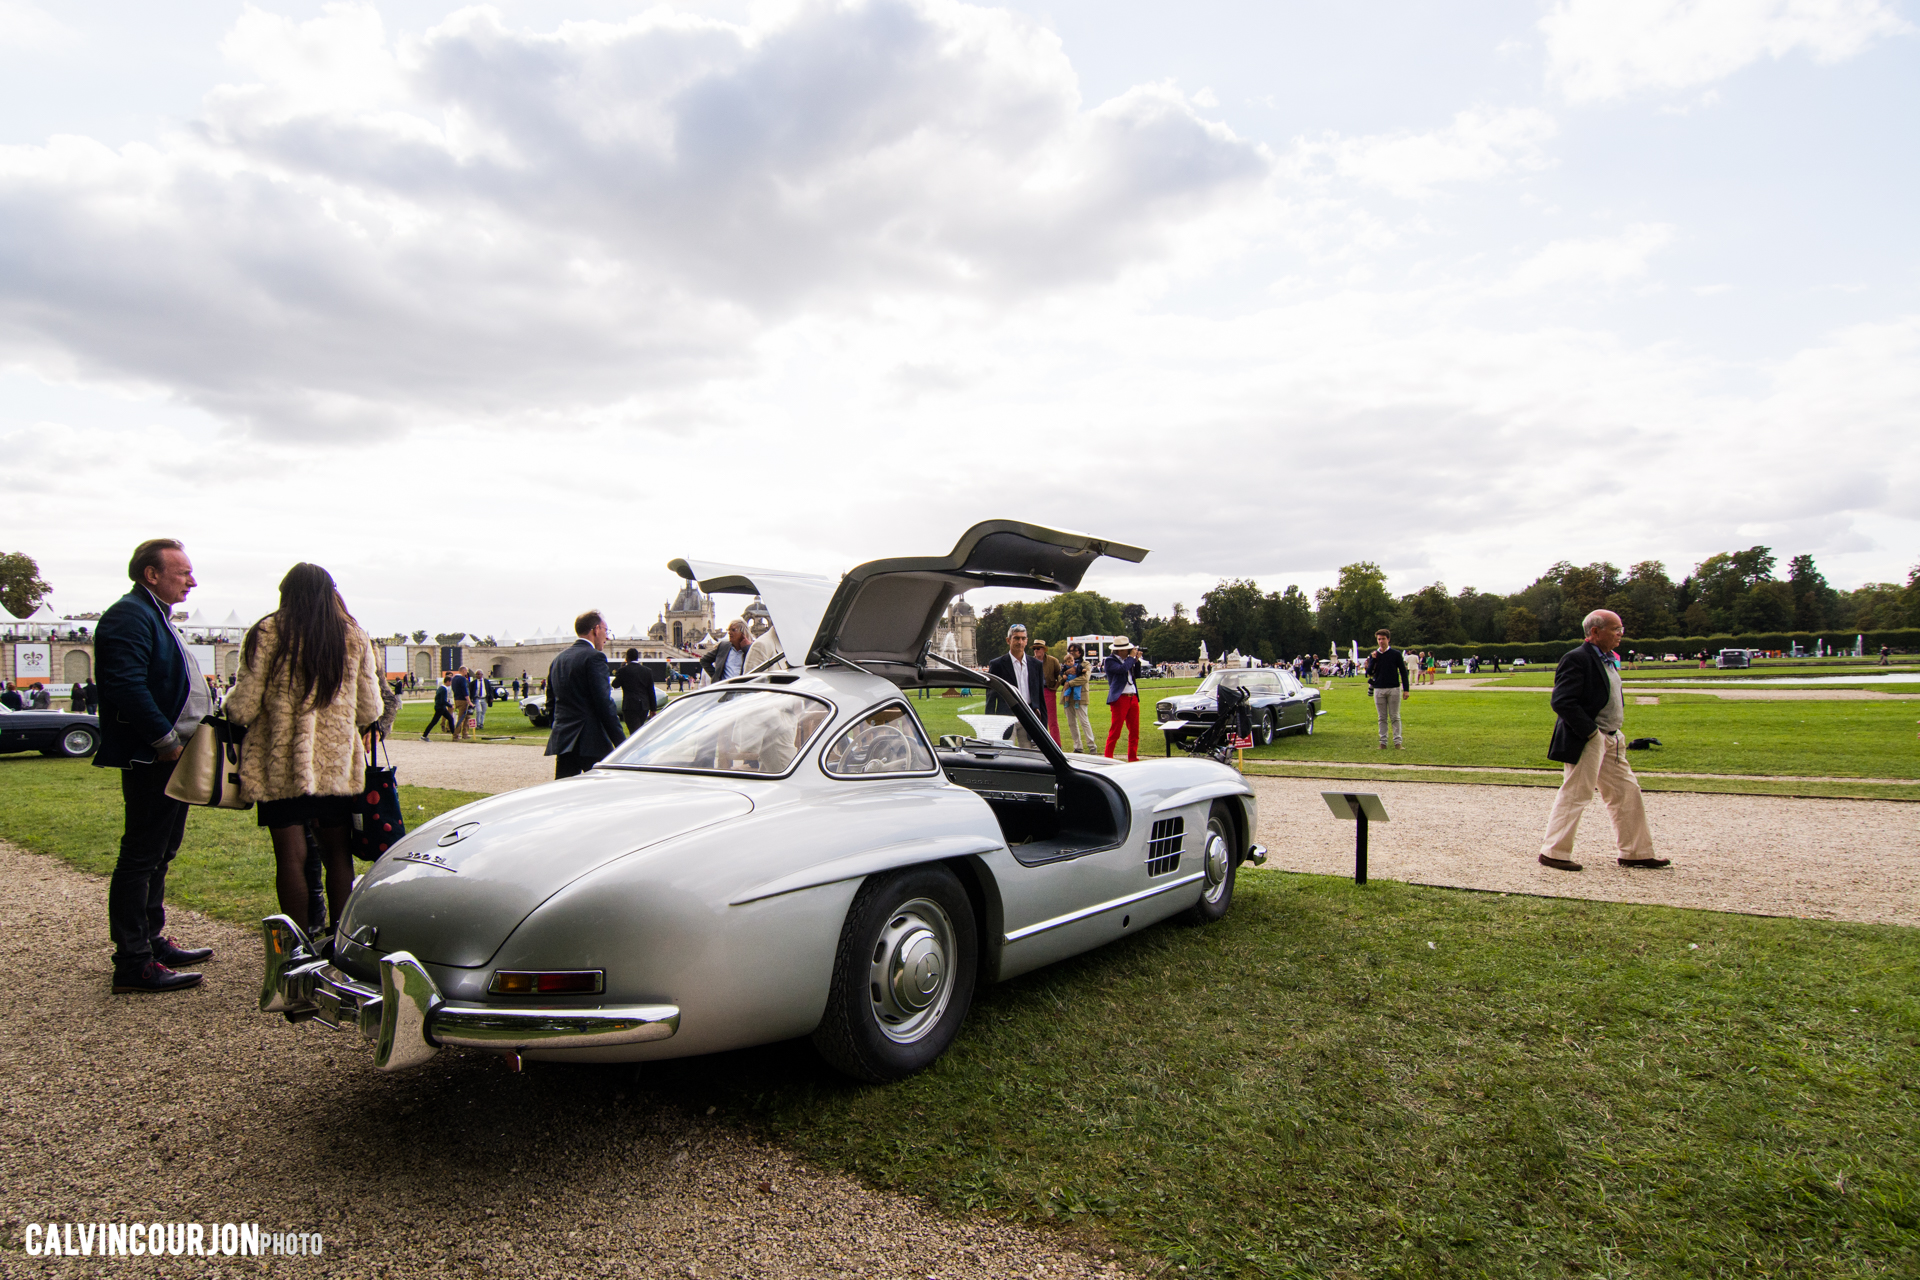 Mercedes 300 SL - Chantilly 2015 – photo Calvin Courjon